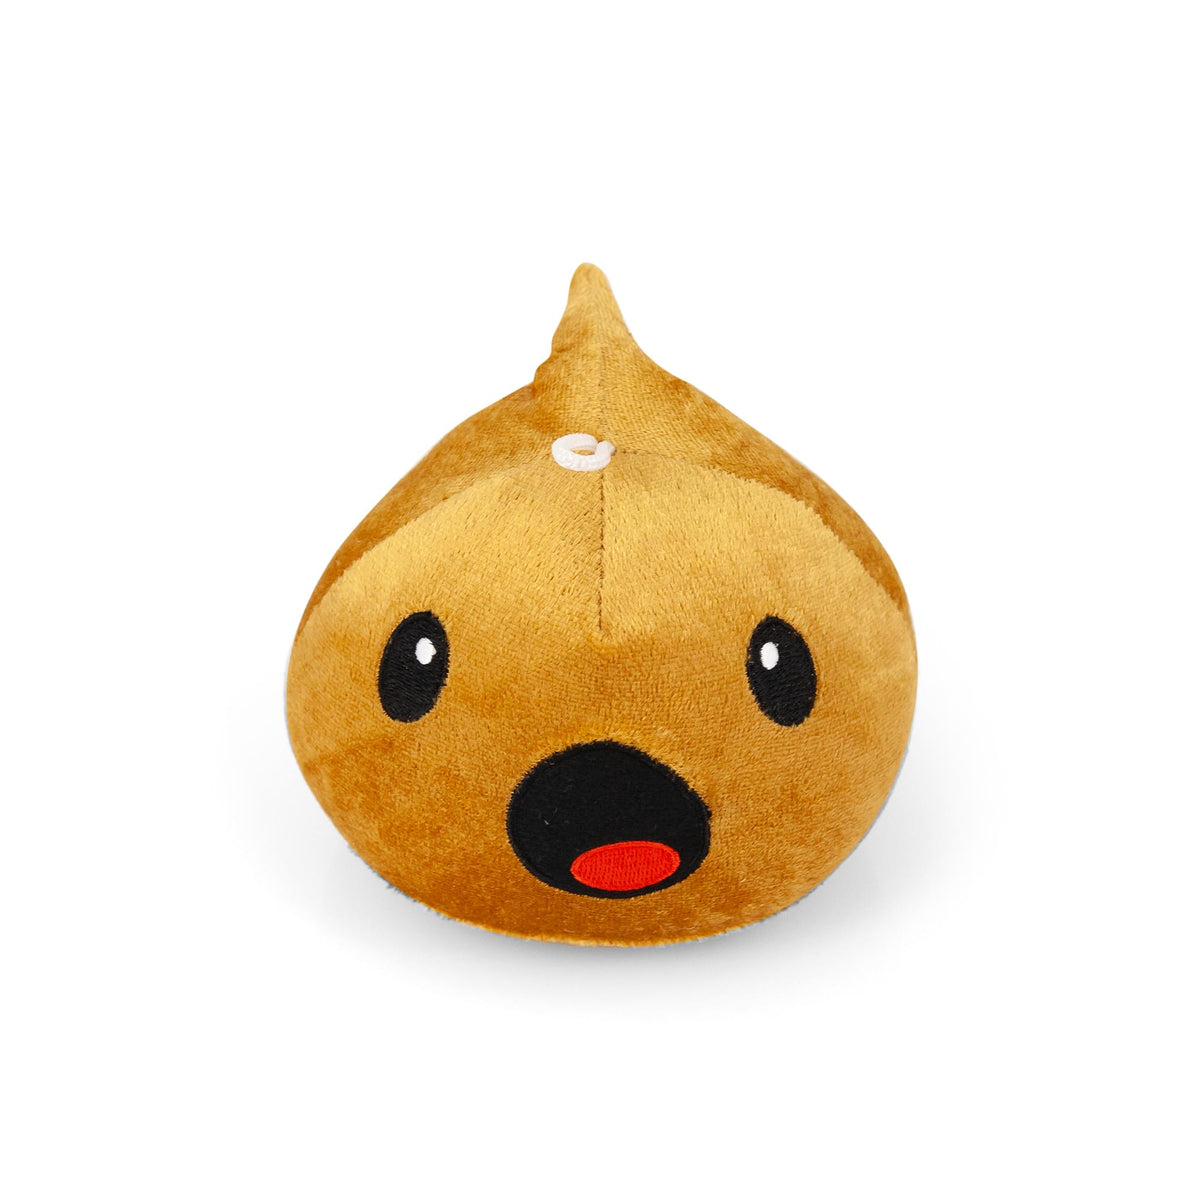 Slime Rancher Plush Toy Bean Bag Plushie | Gold Slime, by Imaginary People